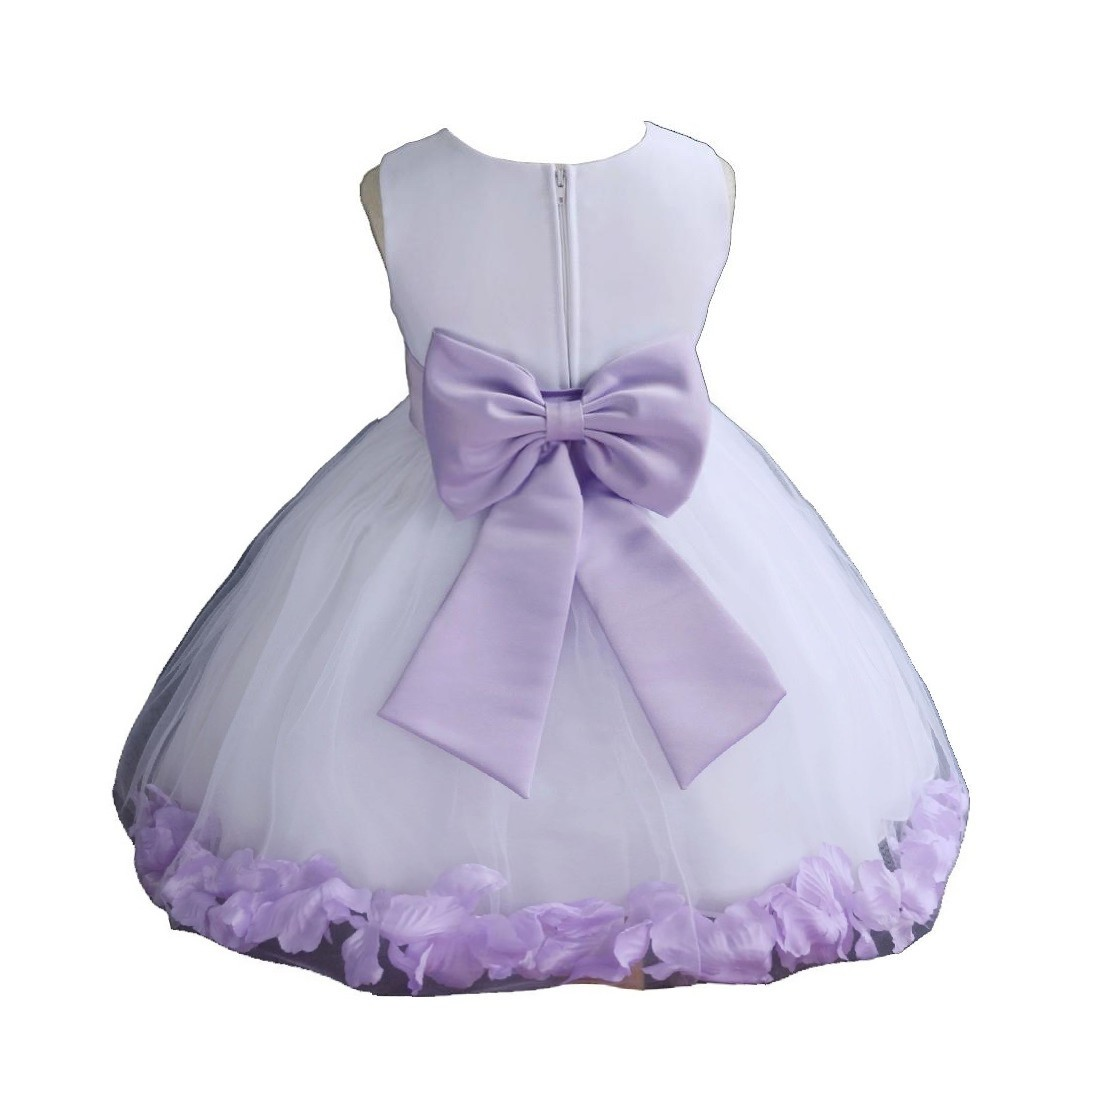 White/ Lilac Rose Petals Tulle Flower Girl Dress Wedding 305T